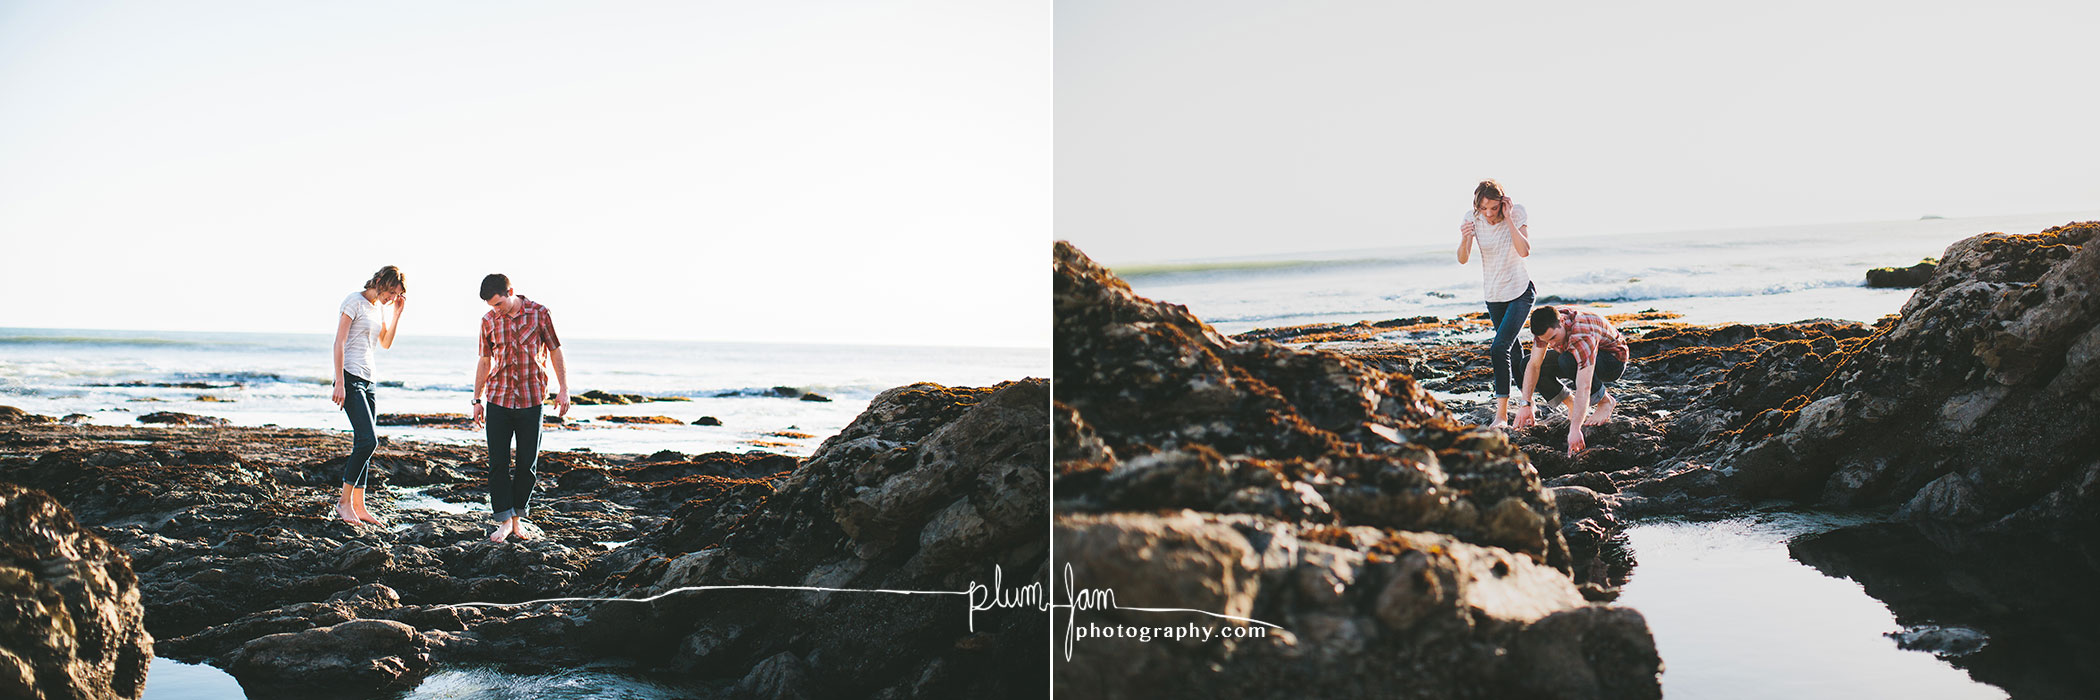 RebeccaMike-Engagement-vineyard-shellbeach-california-plumjamphotography-08